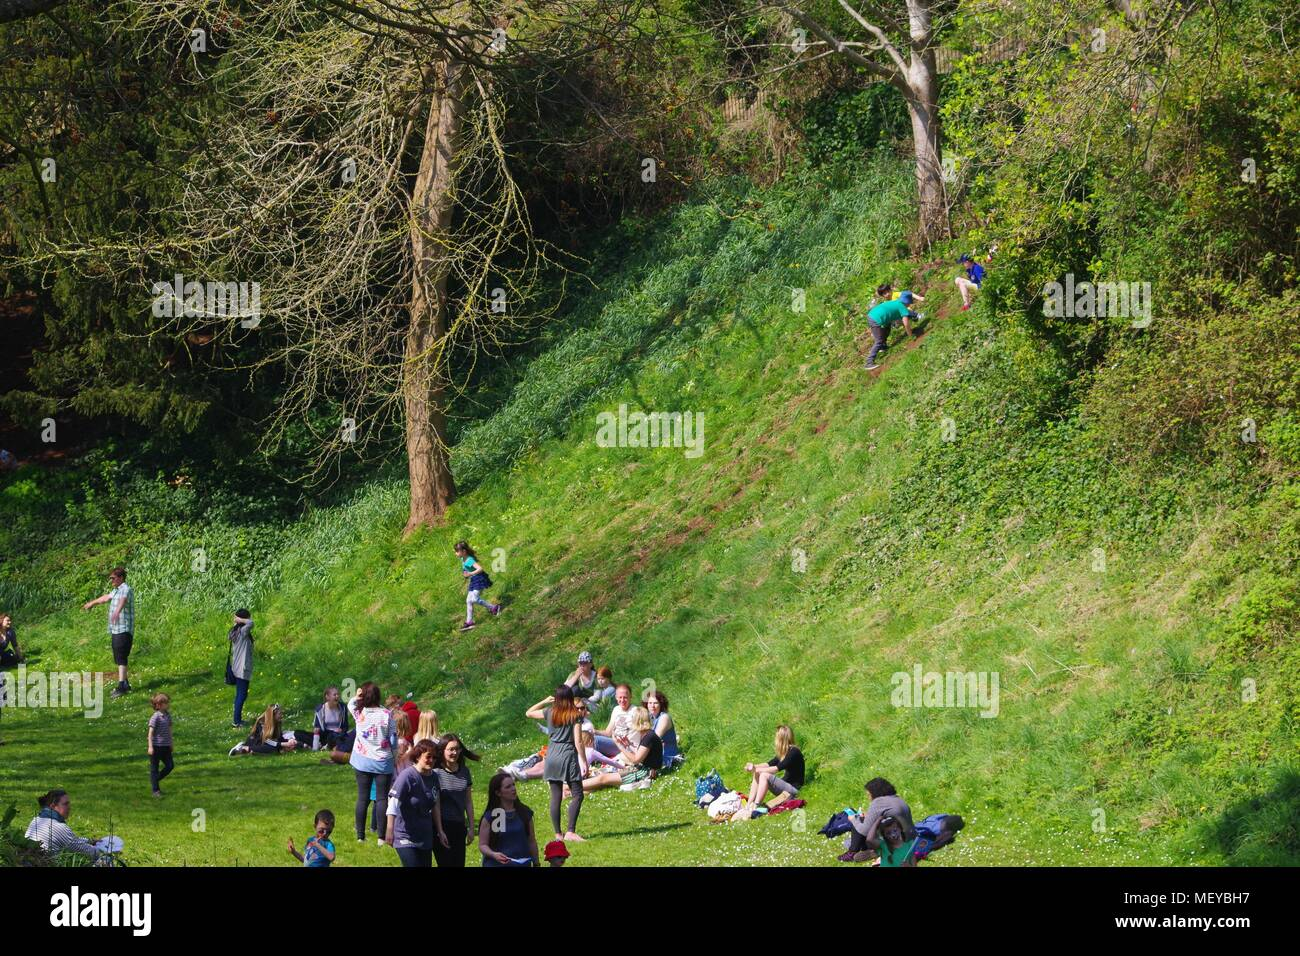 Children Climbing the Old Castle Moat Embankment in Rougemont Gardens at RAMM's Carnival of the Animals Event. Exeter, Devon, UK. April, 2018. - Stock Image